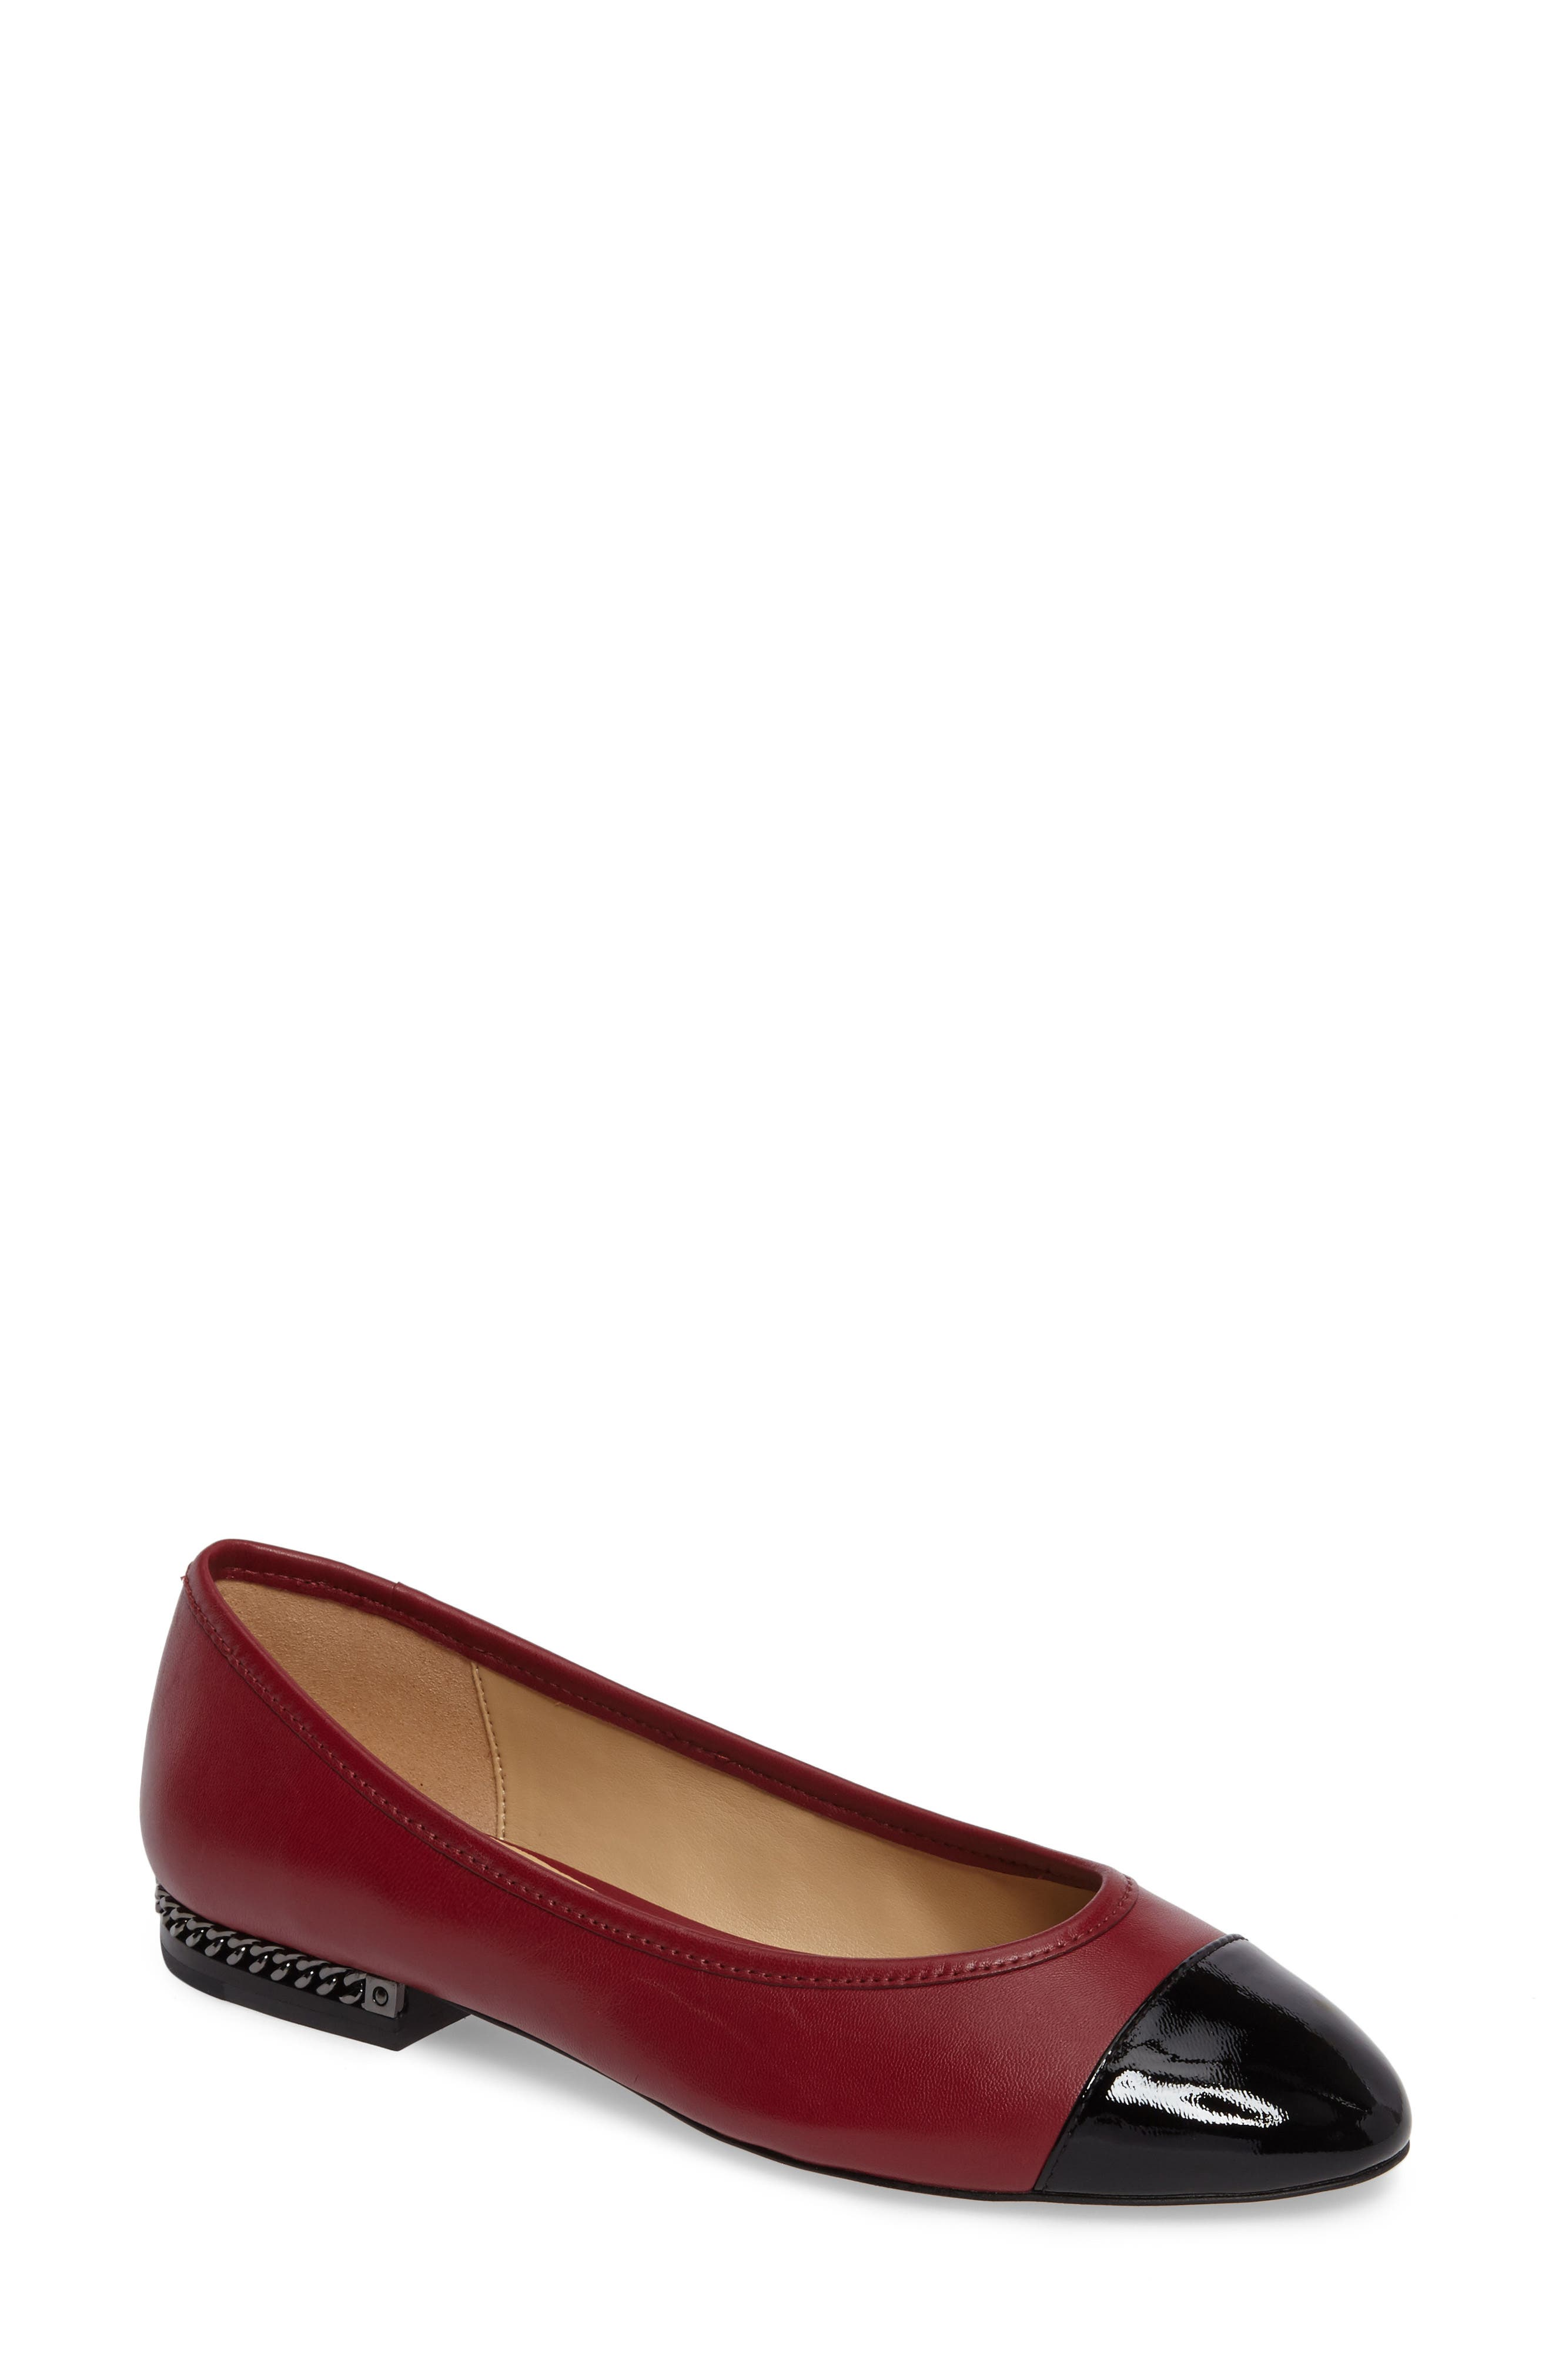 'Sabrina' Ballet Flat,                         Main,                         color, Mulberry Patent Leather